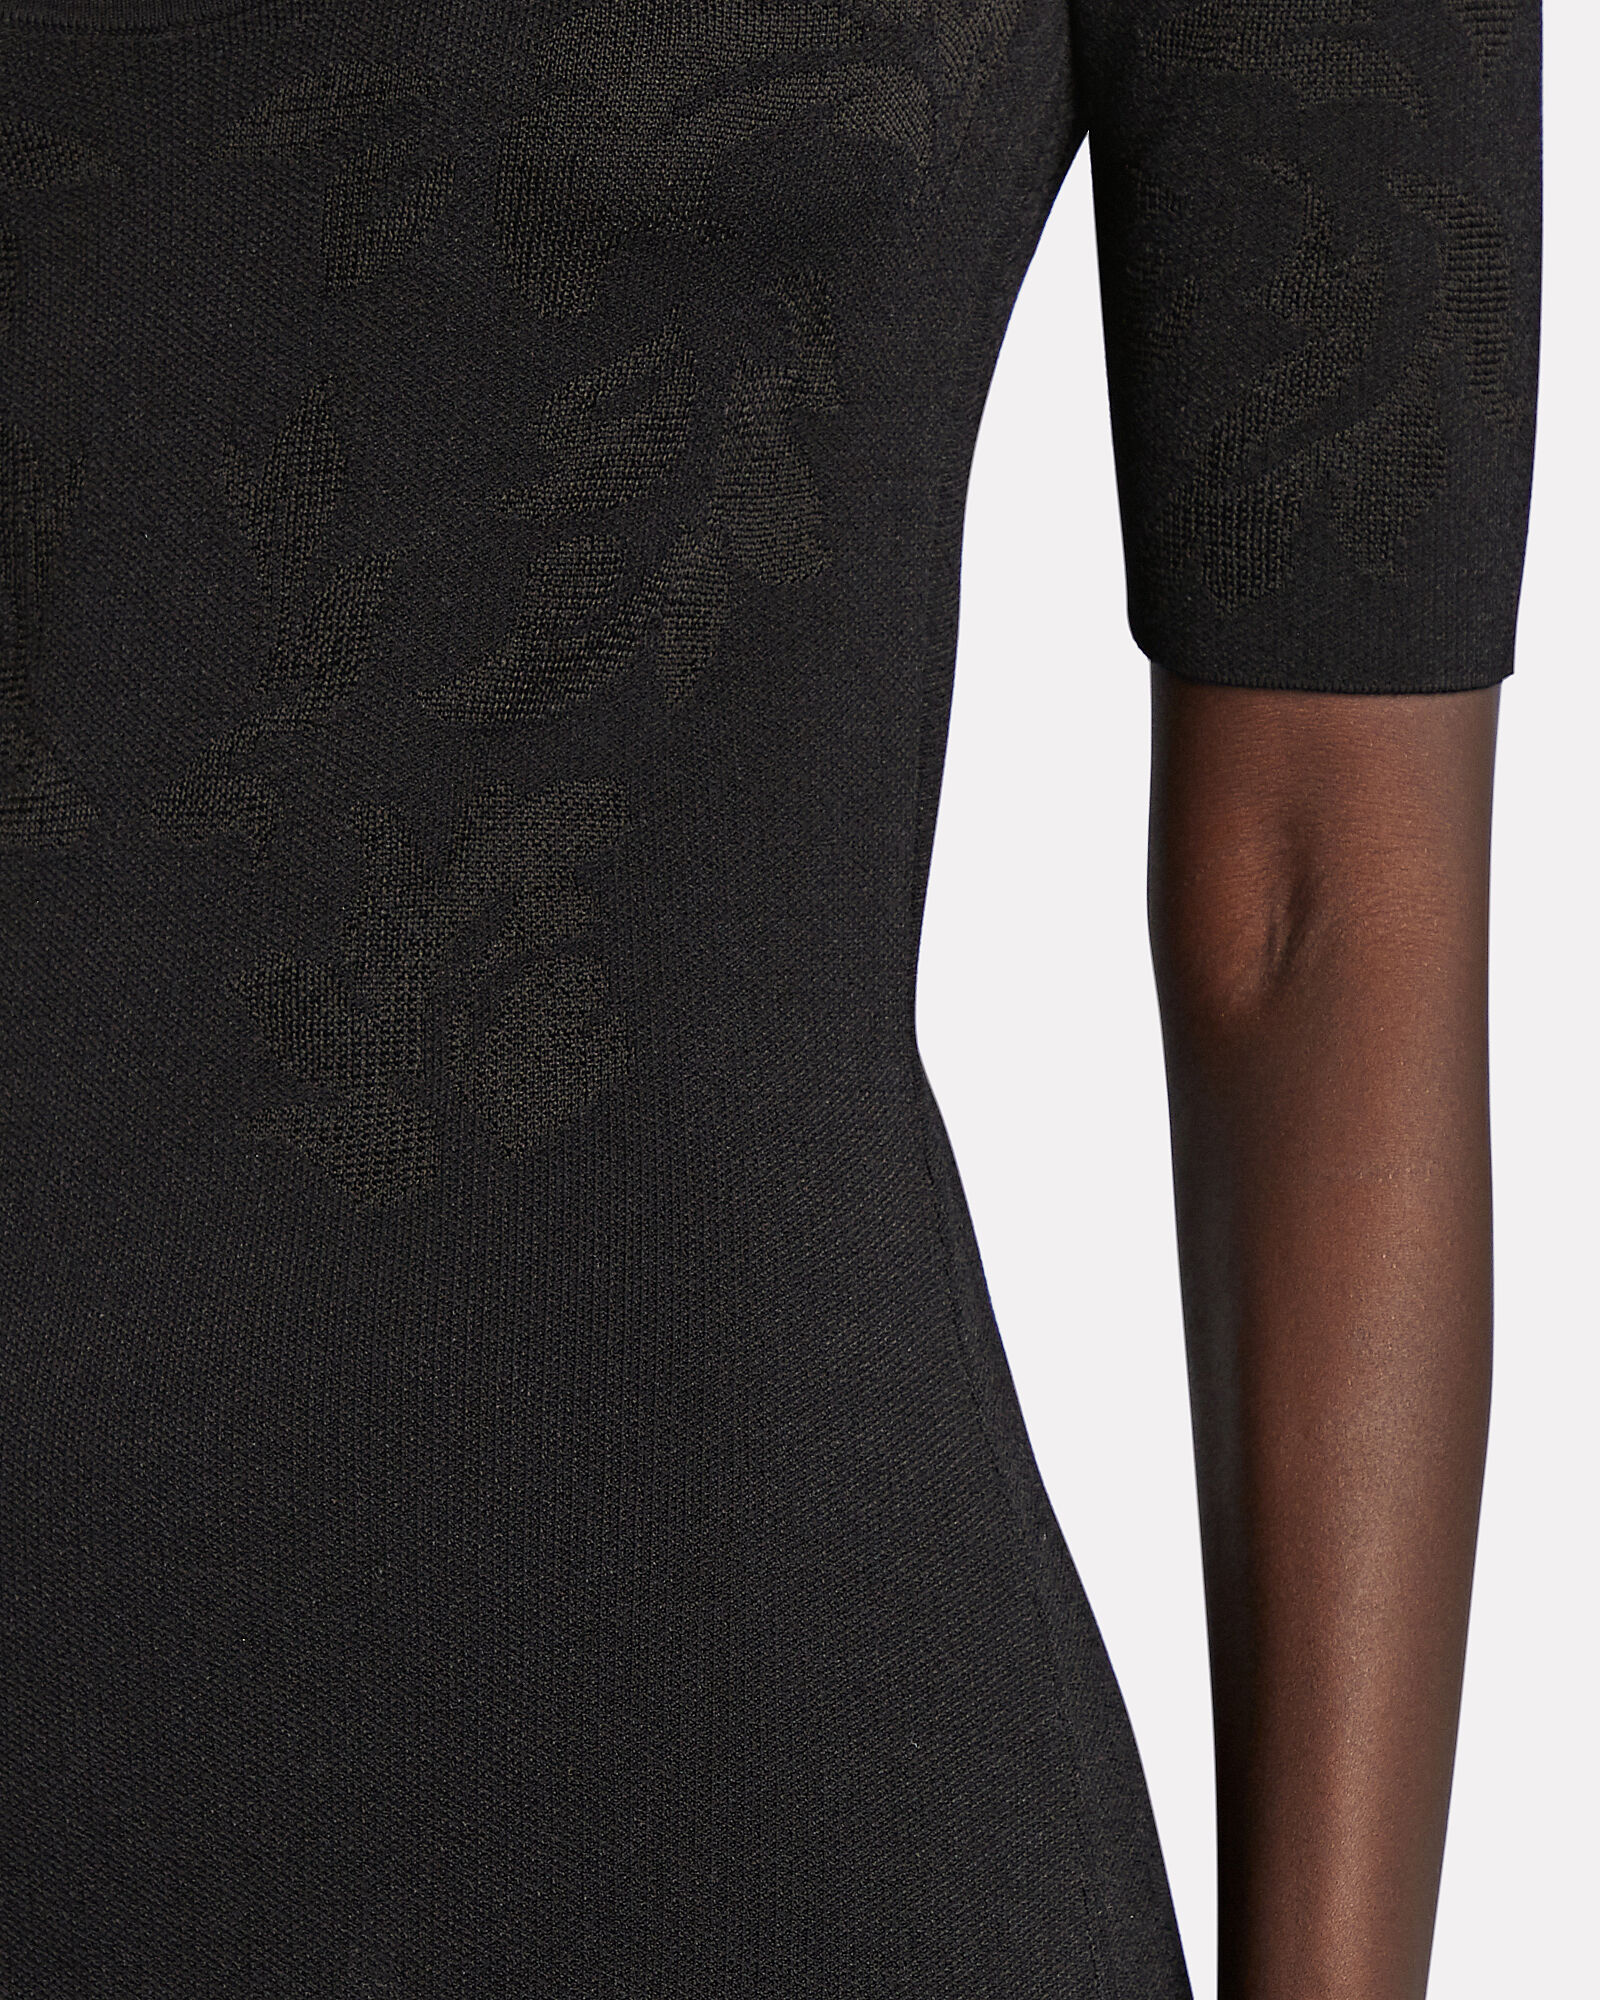 Floral Jacquard Knit Midi Dress, , hi-res